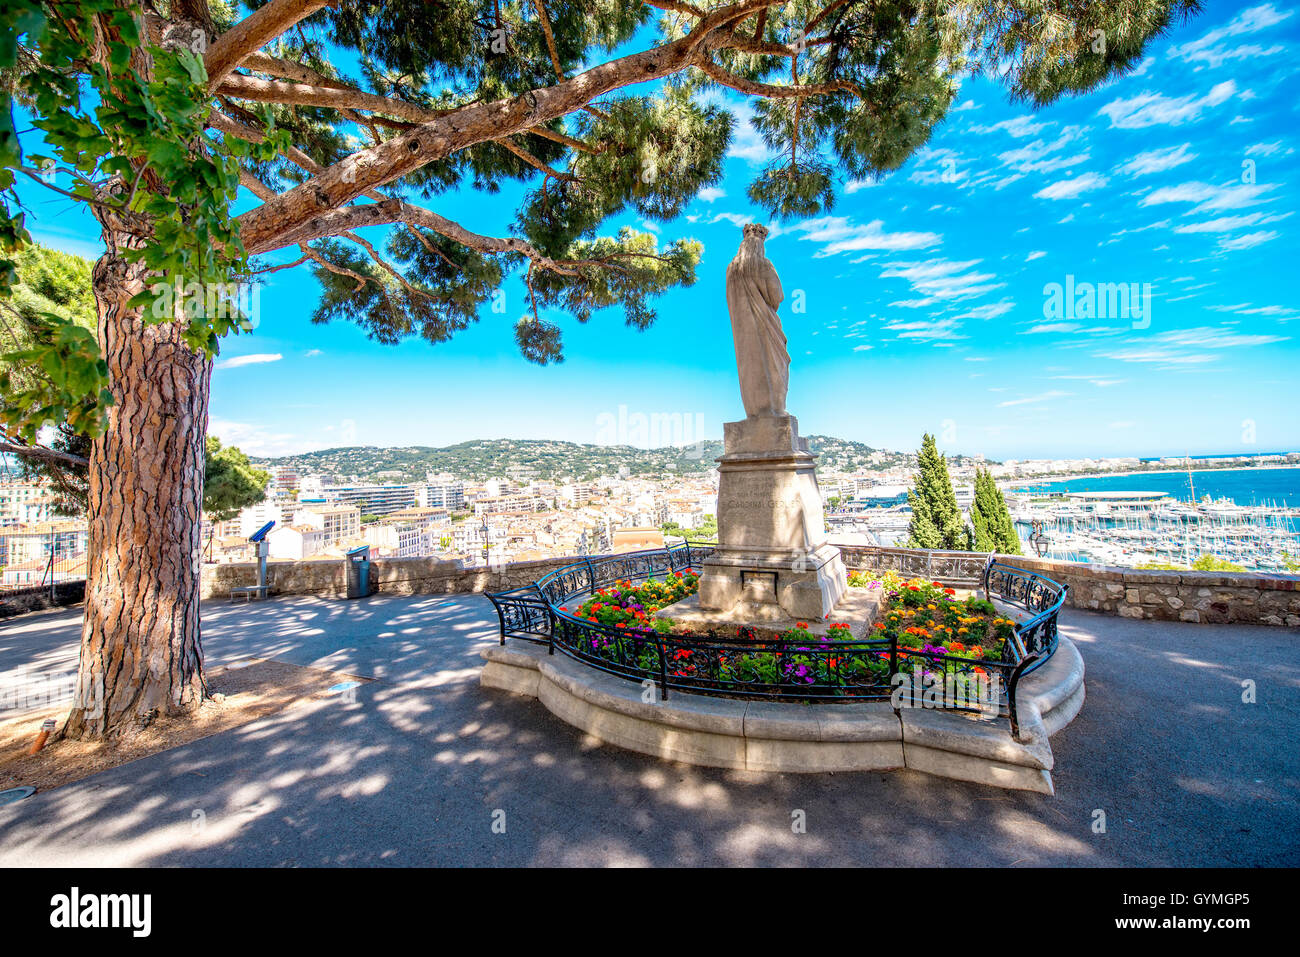 Park in Cannes city - Stock Image